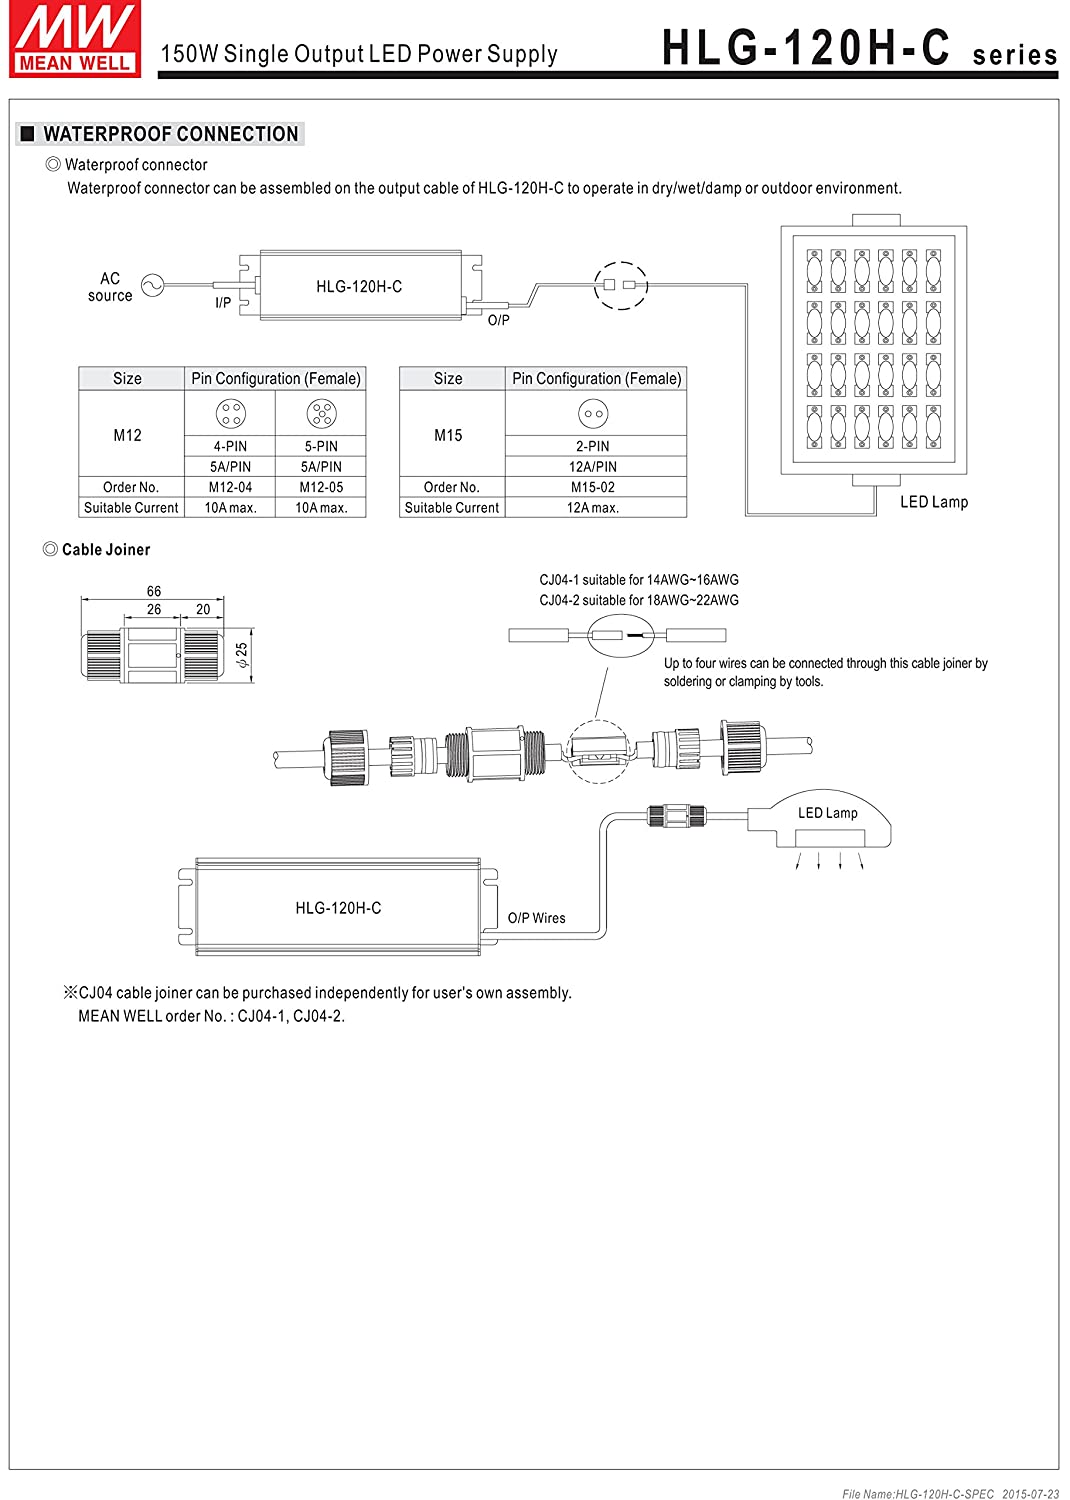 MEAN WELL HLG-120H-C350B 120 W Single Output 350 mA 430 Vdc Output Max IP67 Switching Power Supply - 1 item(s)